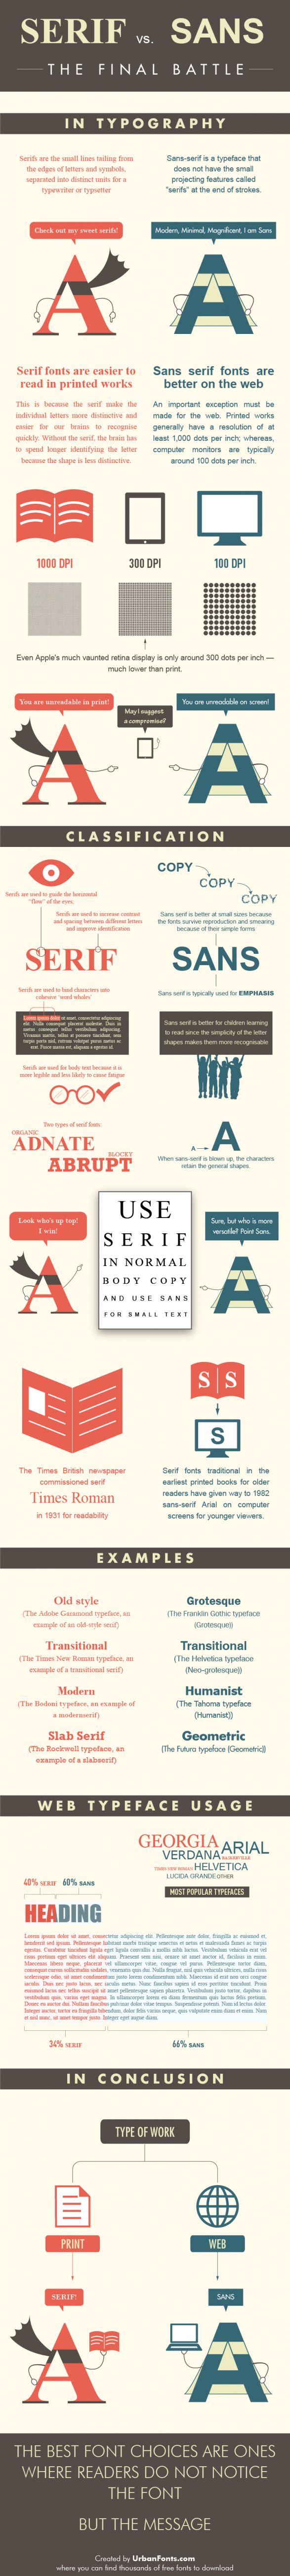 Serif Vs Sans: The Final Battle  Font For A Resume